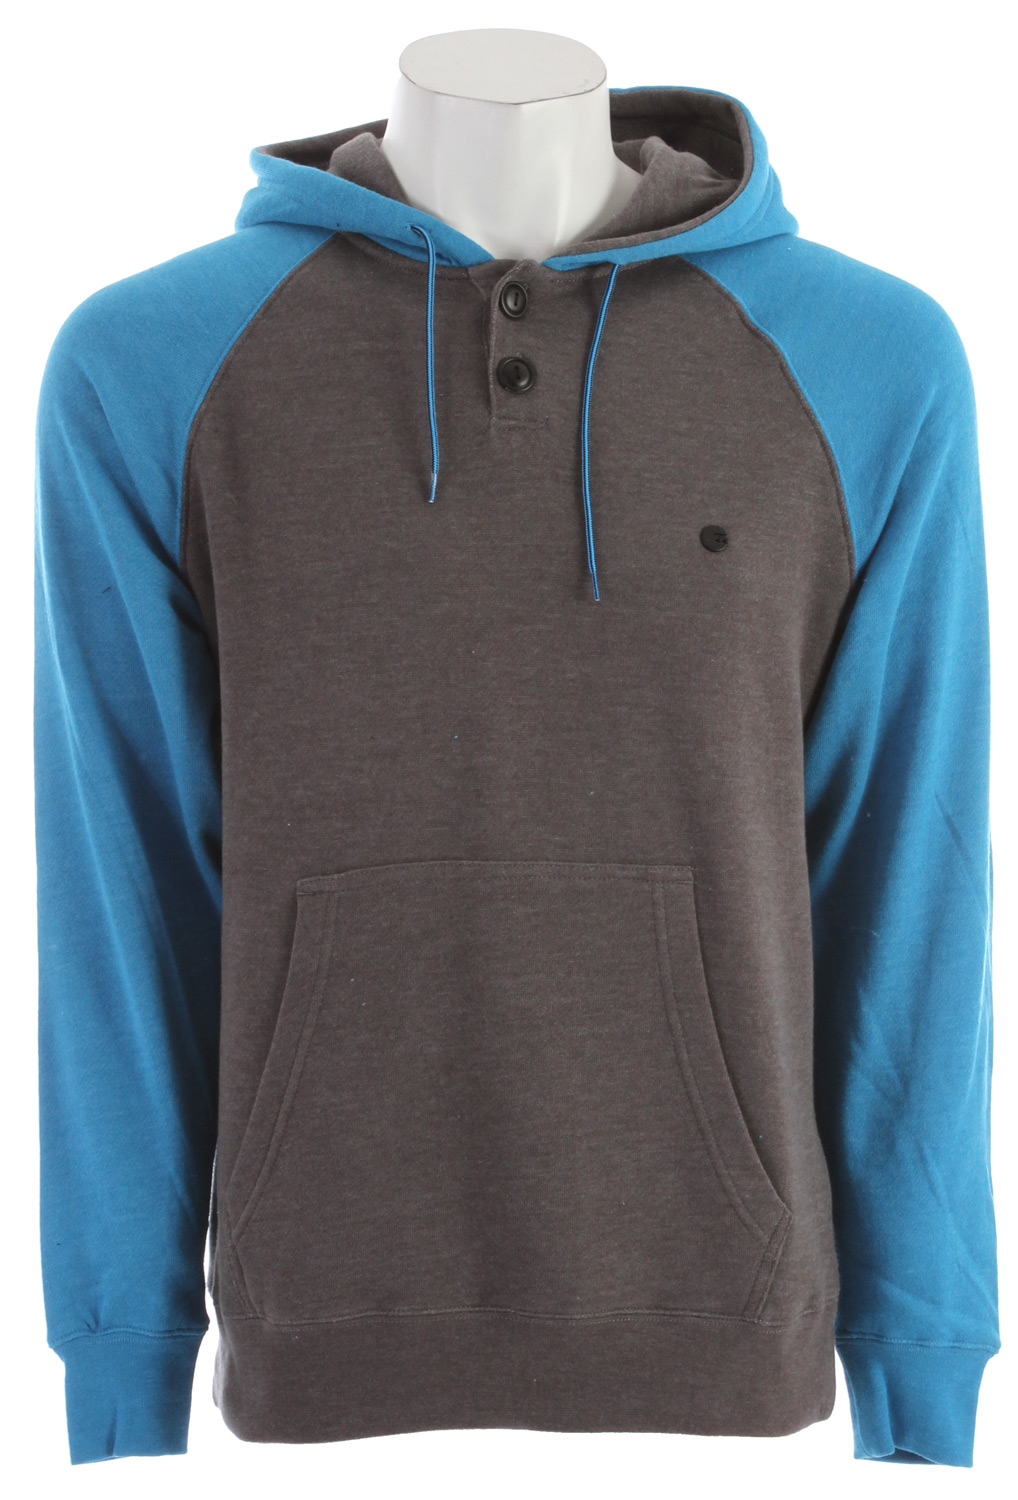 Surf Key Features of the Billabong Balance Pull Over Hoodie: Contrast raglan sleeve fleece in a henley pullover body with pouch pocket and Billabong metal badge on the left chest 60% cotton/40% polyester - $33.95